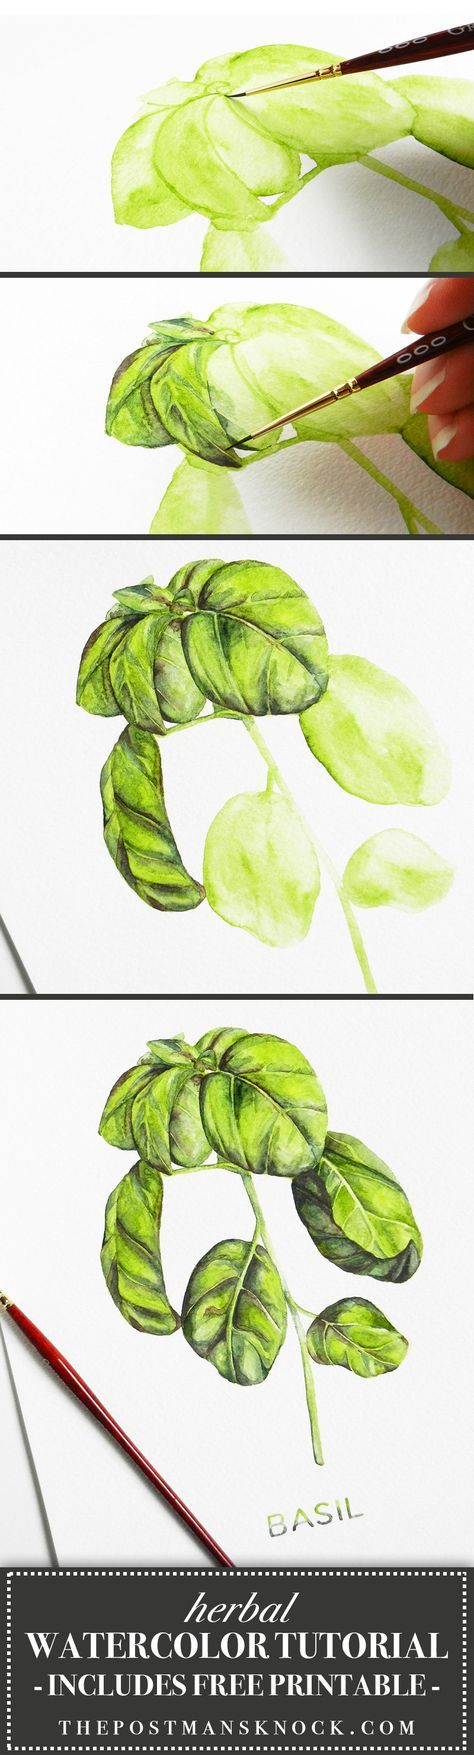 light and shadow drawing tutorial